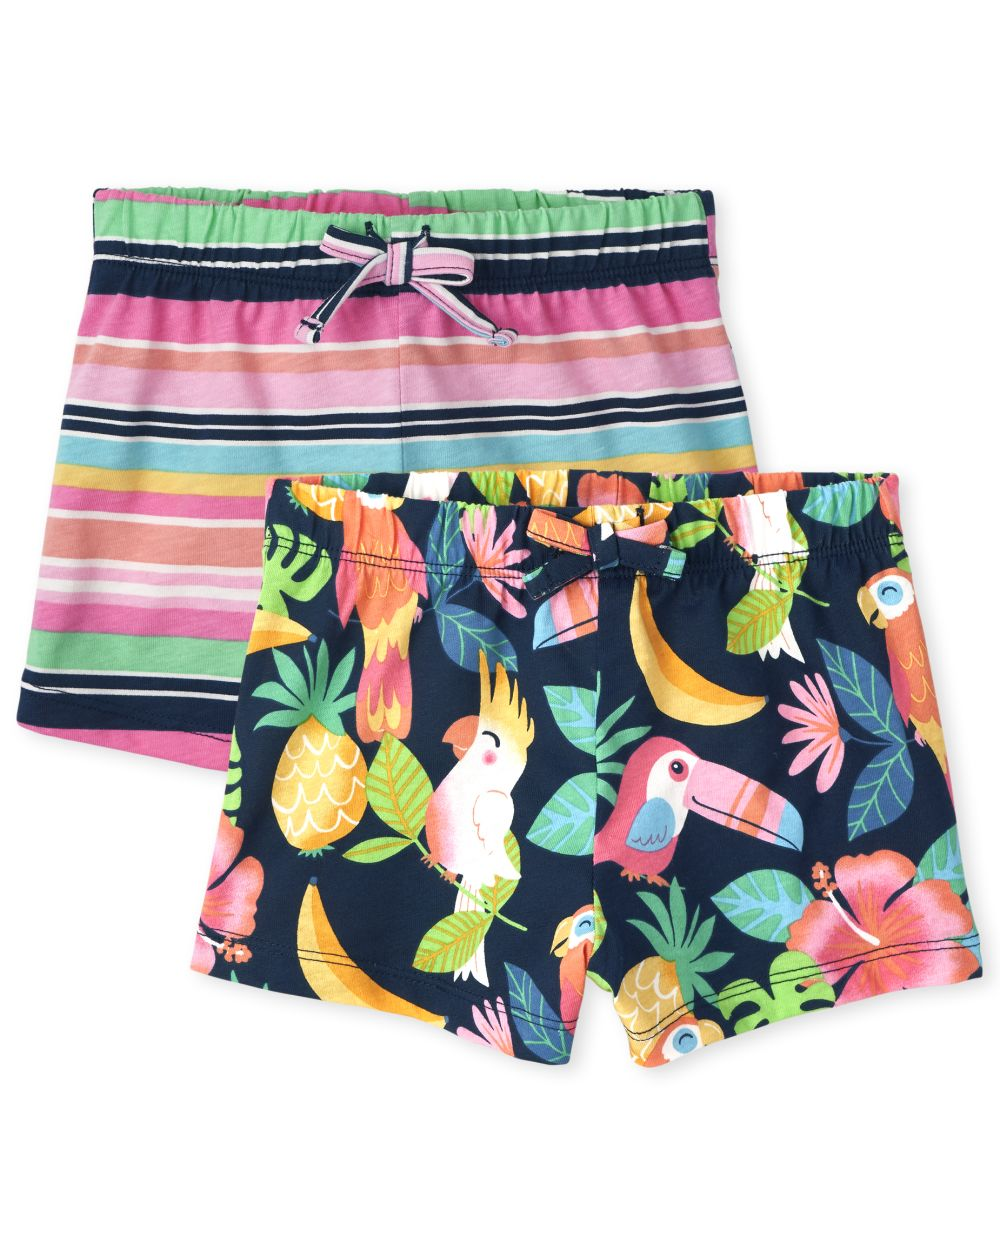 Toddler Tropical Shorts 2-Pack - Blue